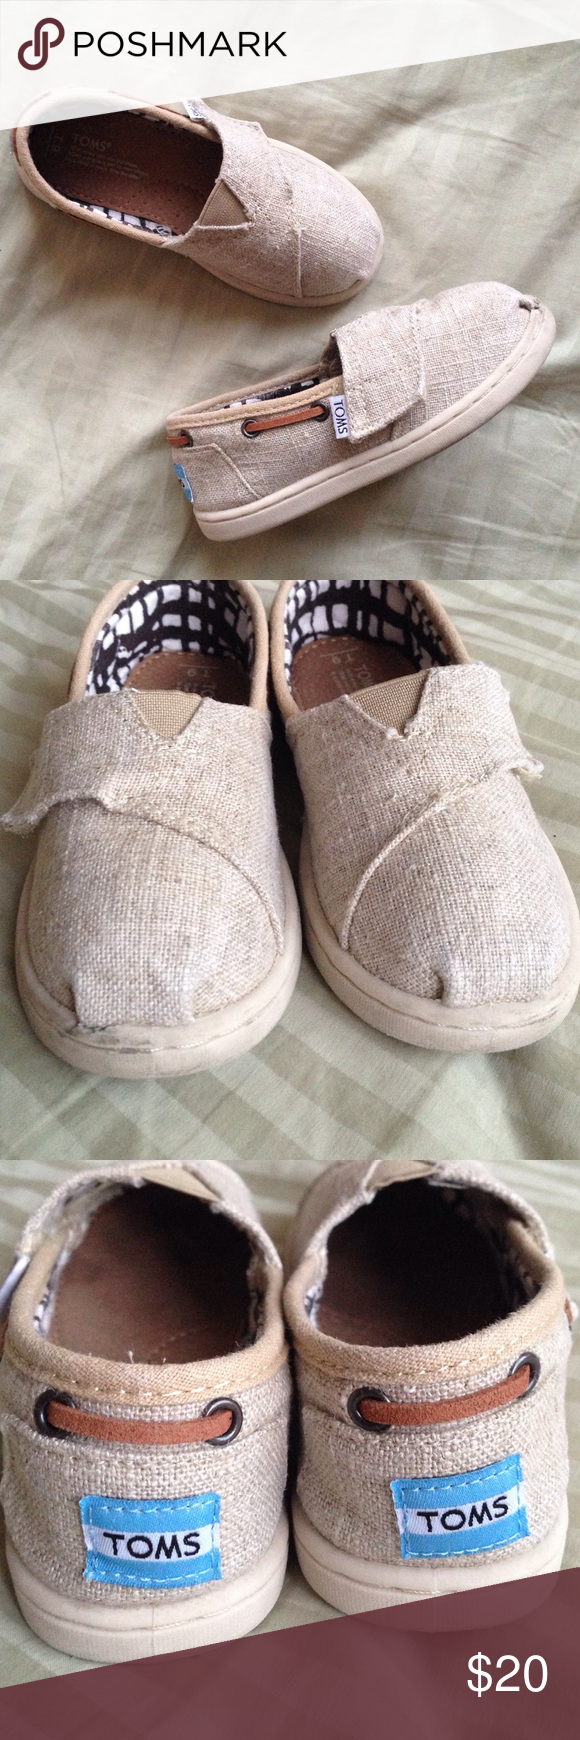 Toddler Boys Girls Burlap TOMS Gently worn in very good condition! Size 9. TOMS Shoes Sneakers